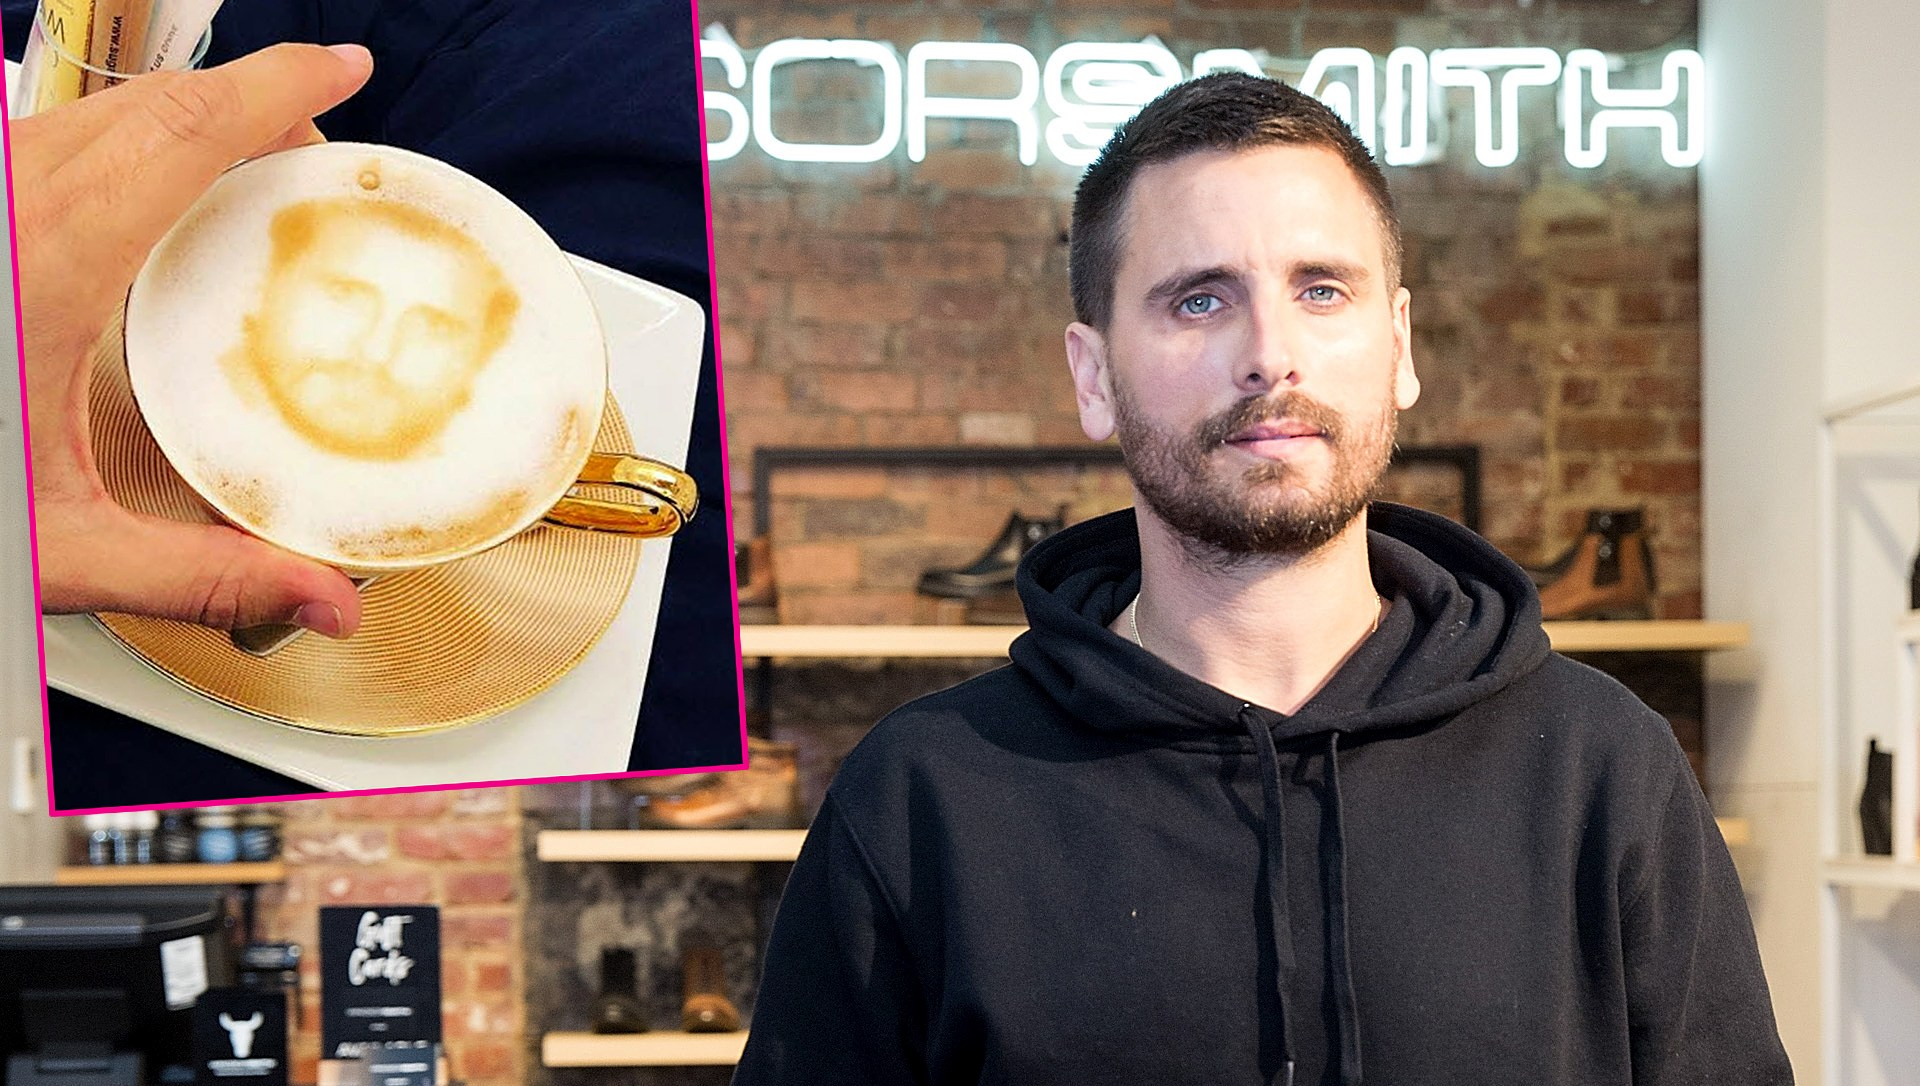 Scott Disick Drank a Beverage With a Foam Art Version of His Face on It: 'Lord Tea'